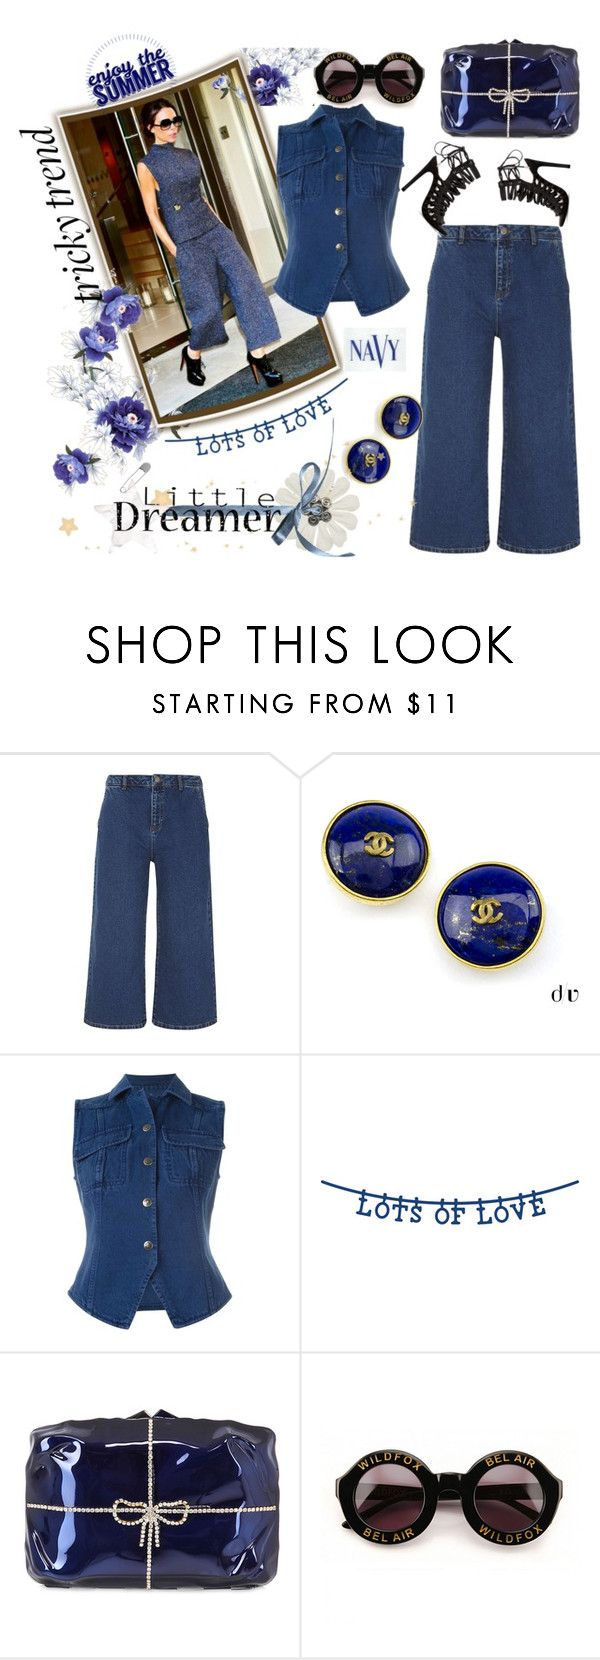 """""""Tricky Trend"""" by thedistinctiveme ❤ liked on Polyvore featuring Dorothy Perkins, Chanel, Romeo Gigli, COVERGIRL, Benedetta Bruzziches, Wildfox, TrickyTrend and culottes"""